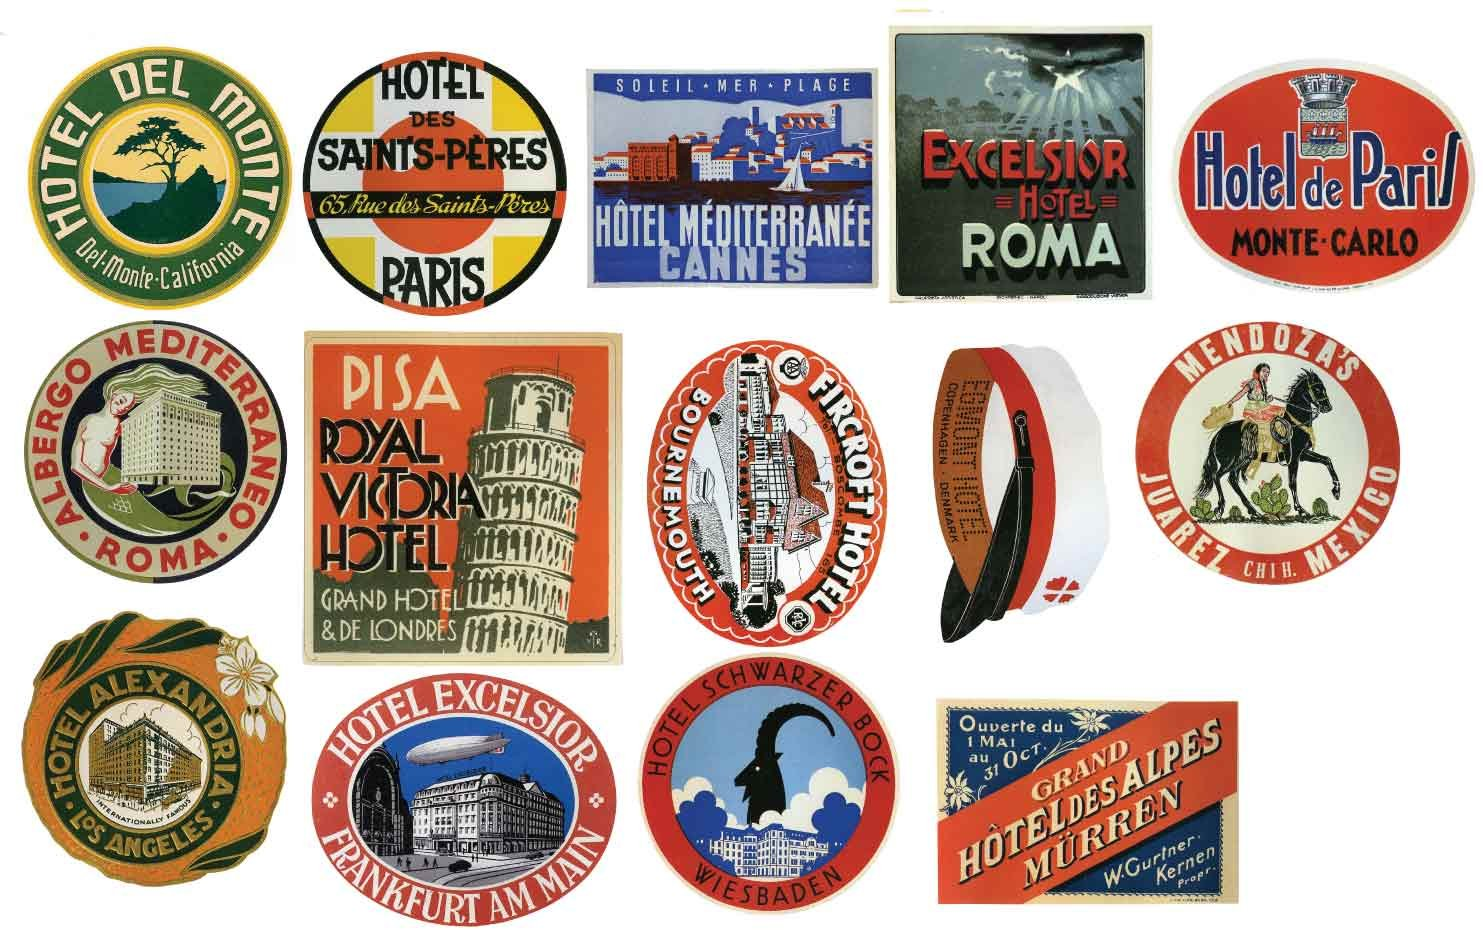 HLD14 Vintage Hotel Luggage Label Stickers - Pack Of 14 Suitcase Travel Decals Large Multi Large Multi: Automotive